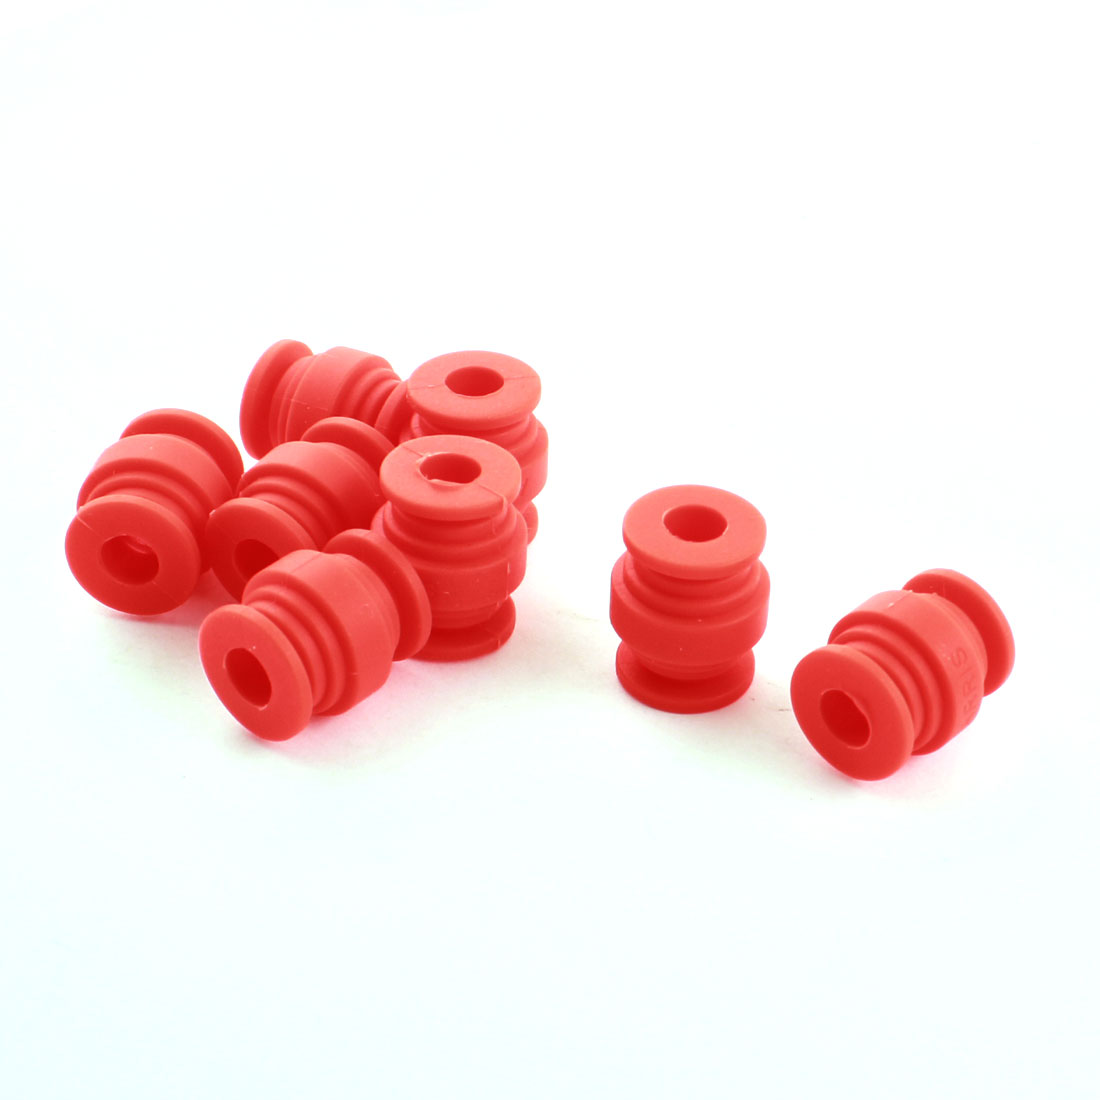 8 Pcs 8mm Dia 20mm Height Red Rubber Shock Absorption Anti Vibration Damping Ball for FPV Gimbal Camera Mount